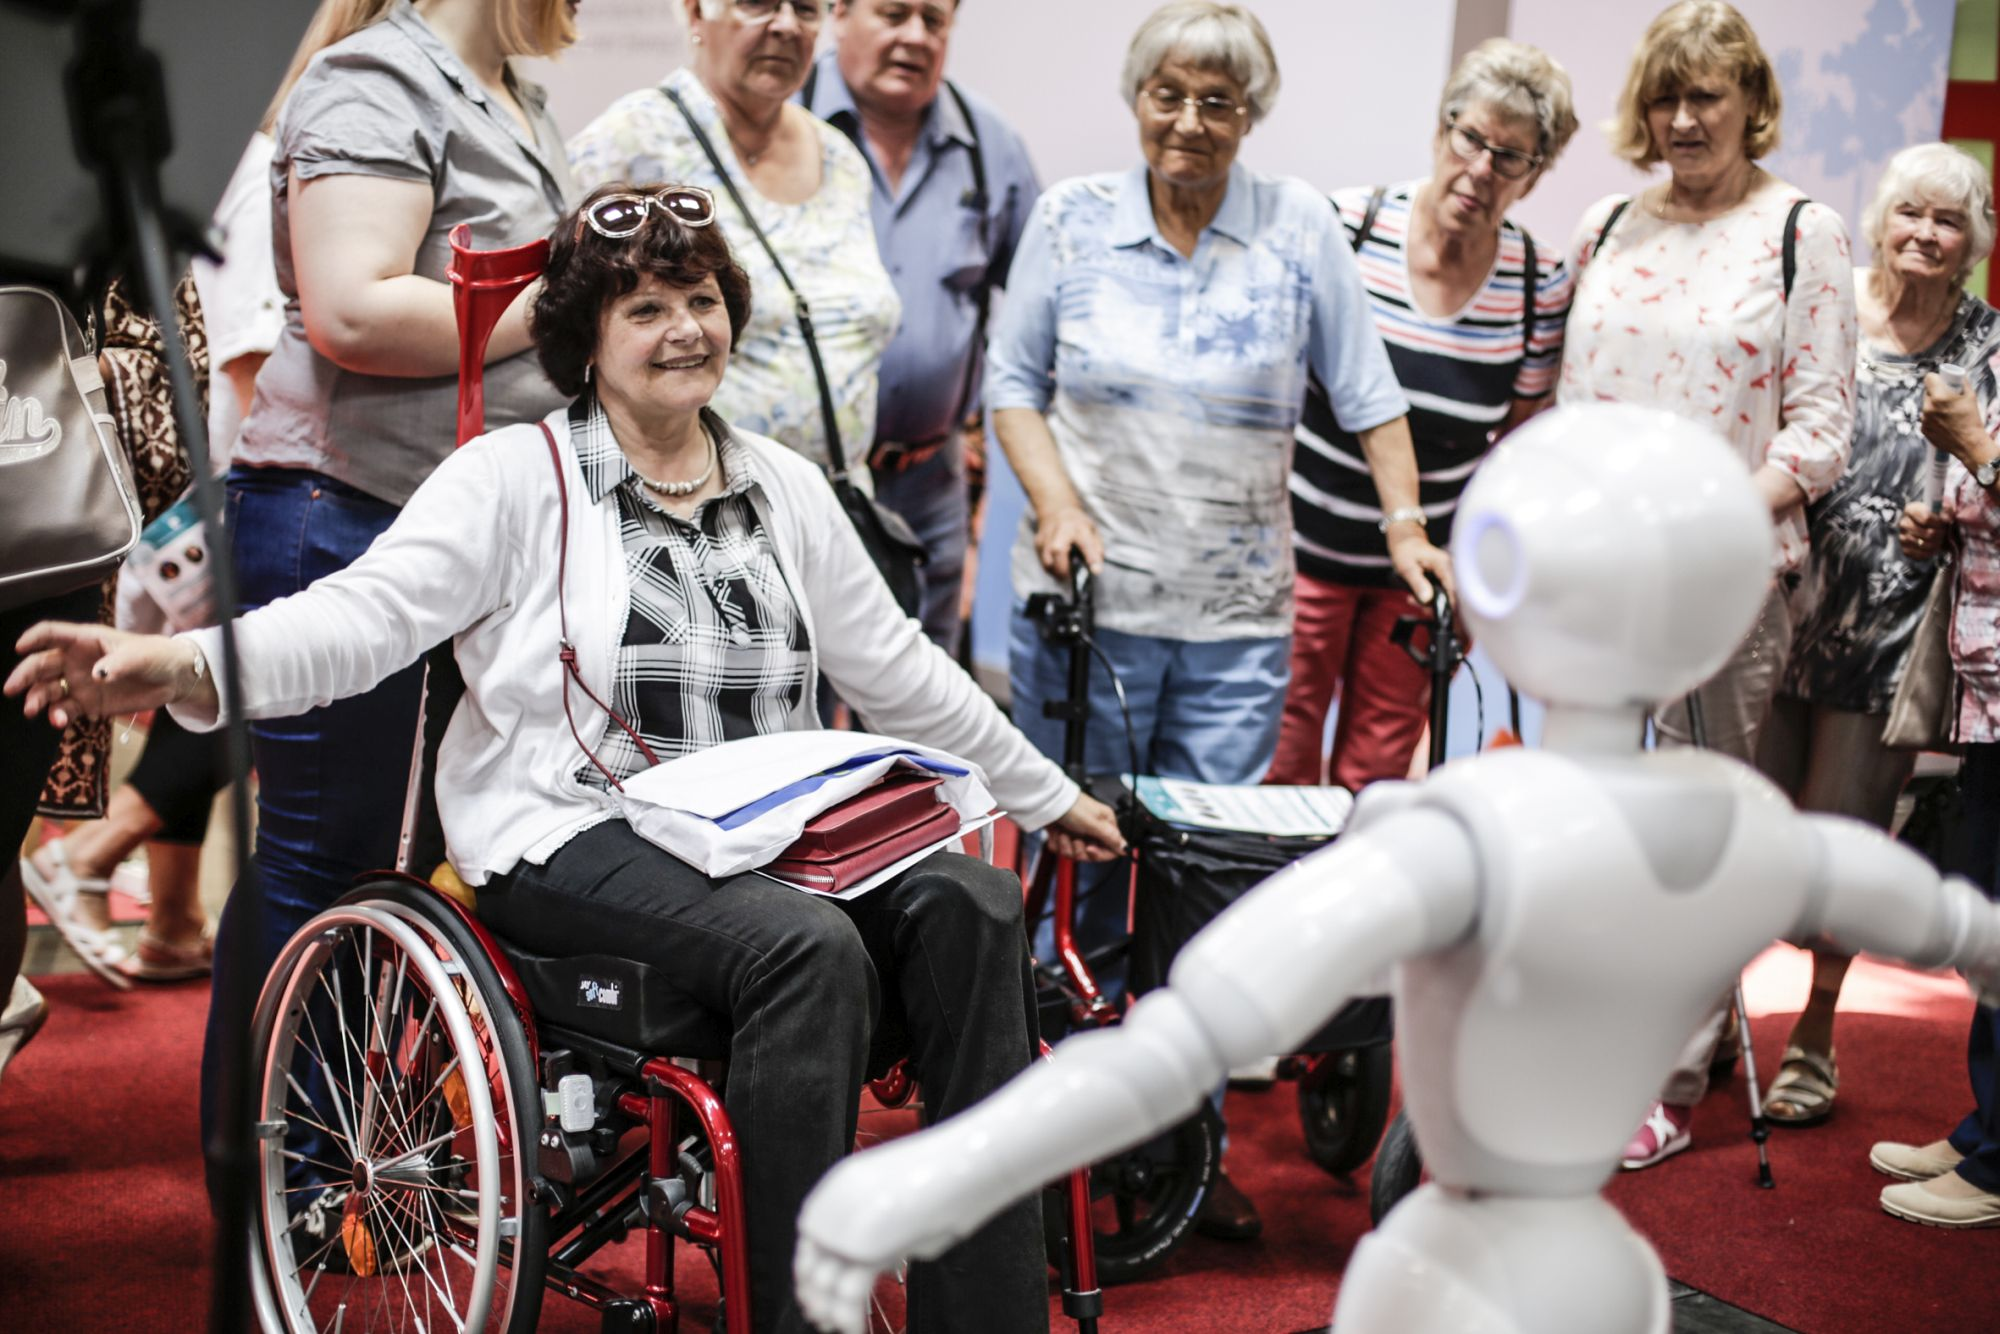 A woman sitting in a wheel chair looks at a robot while they both extend their arms to the side